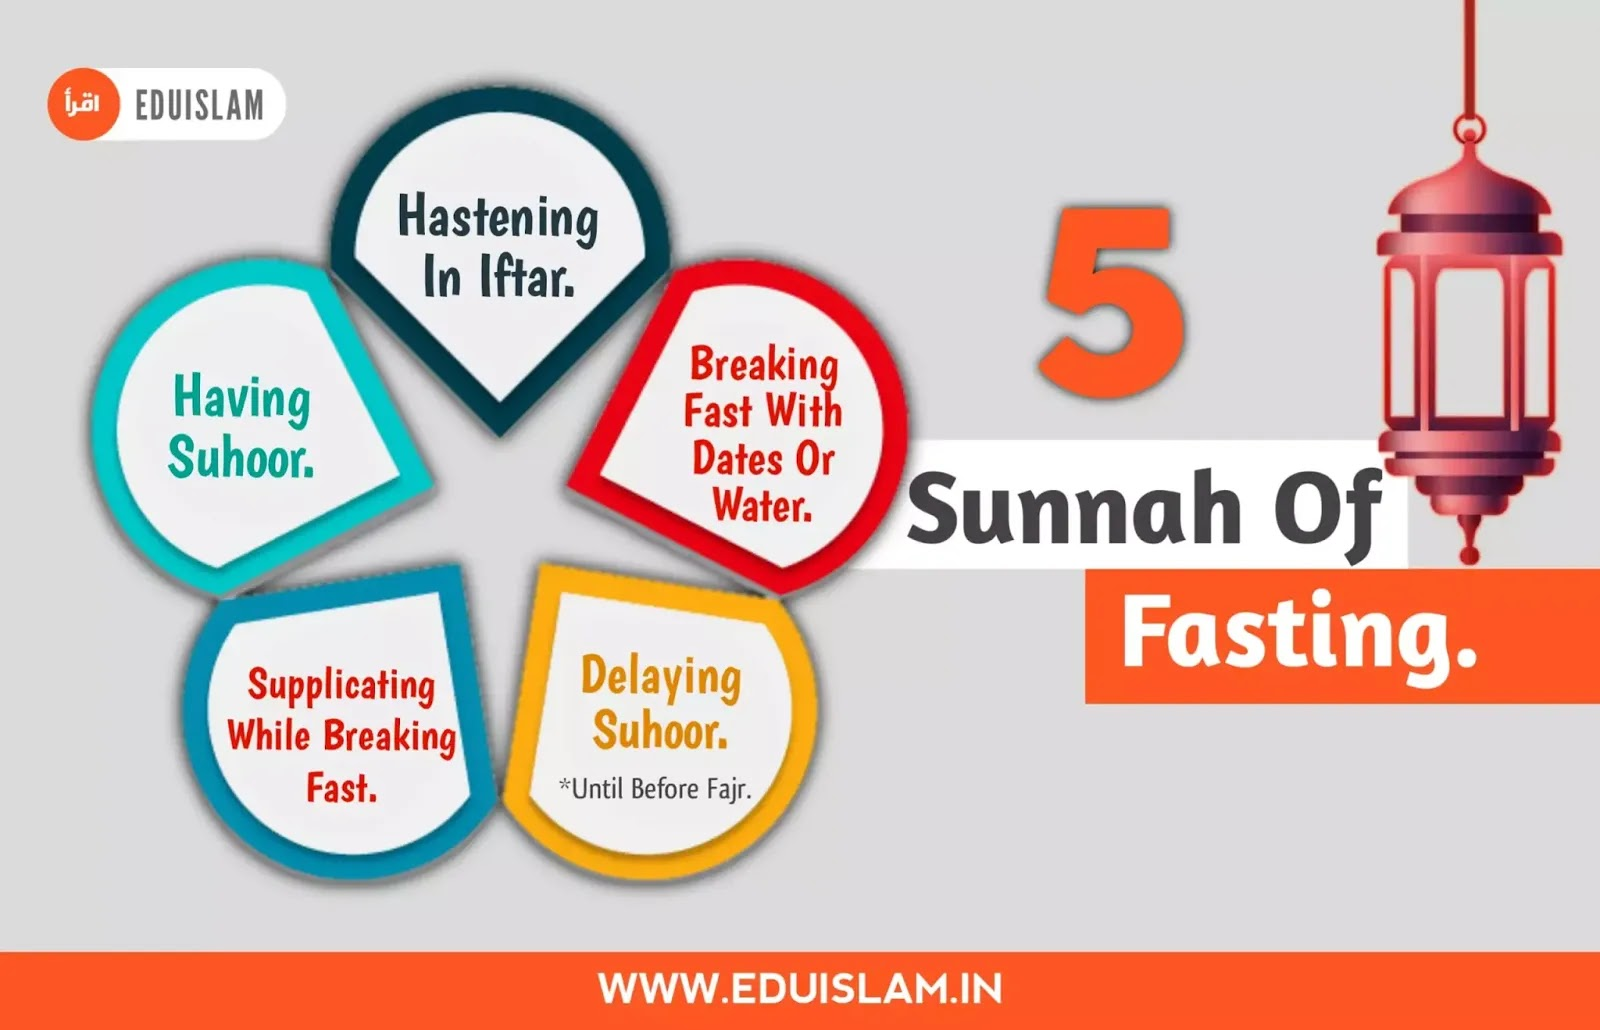 5 Sunnah Of Fasting During Ramadan